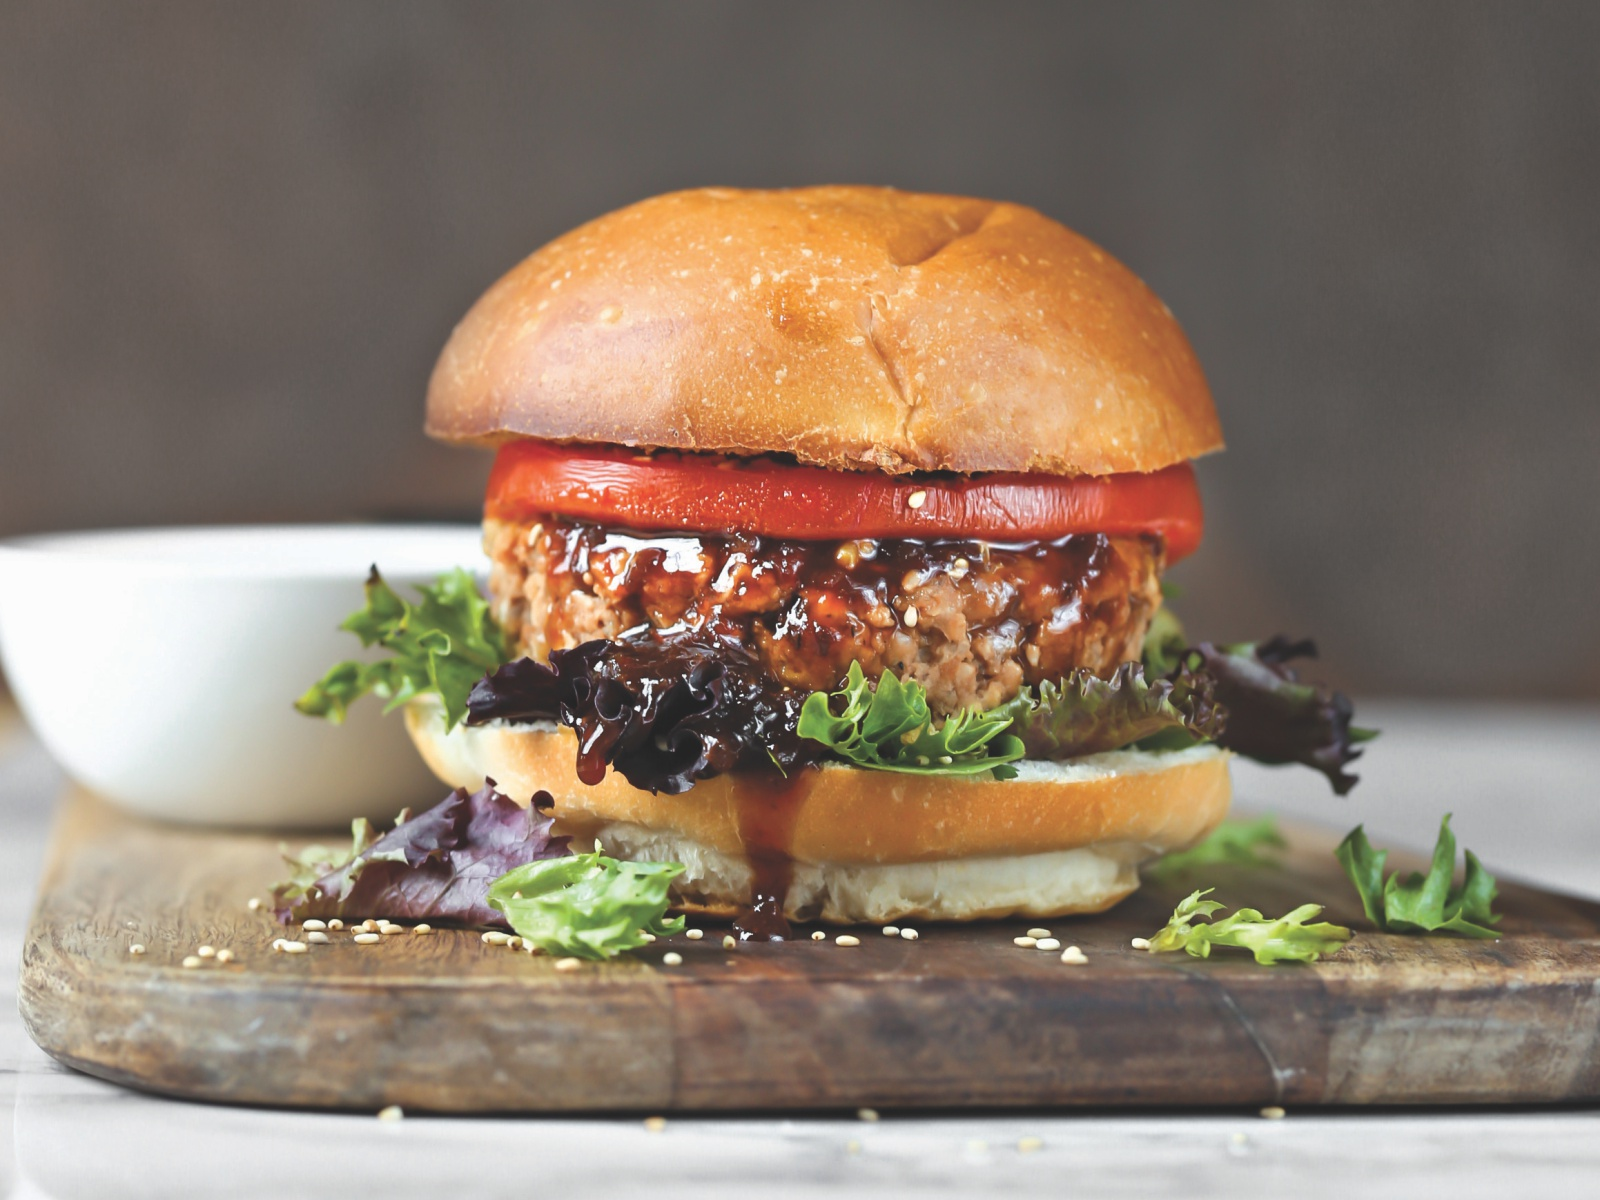 Teriyaki patty burger